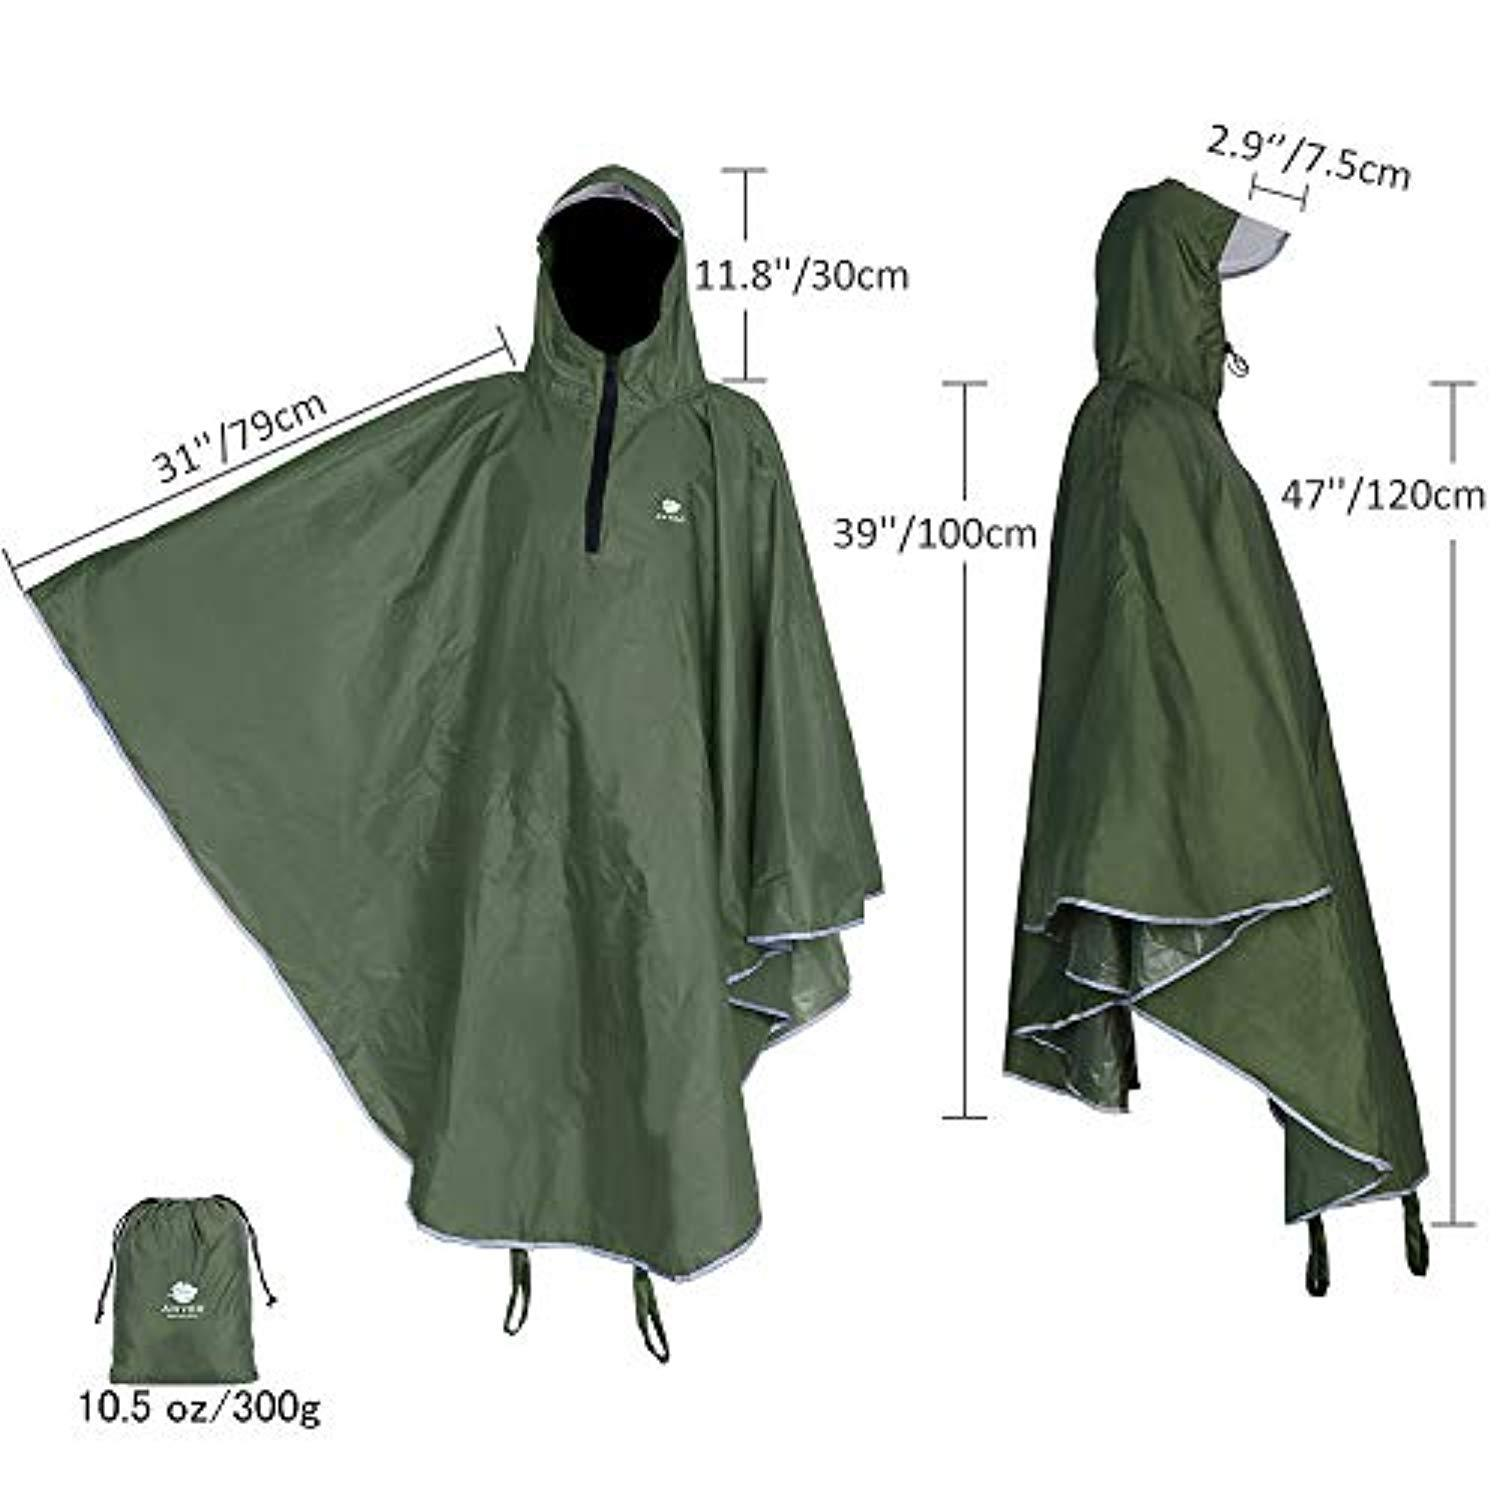 BLACK DELUXE Waterproof Army Adult Rain Poncho PVC for Festivals Theme Park